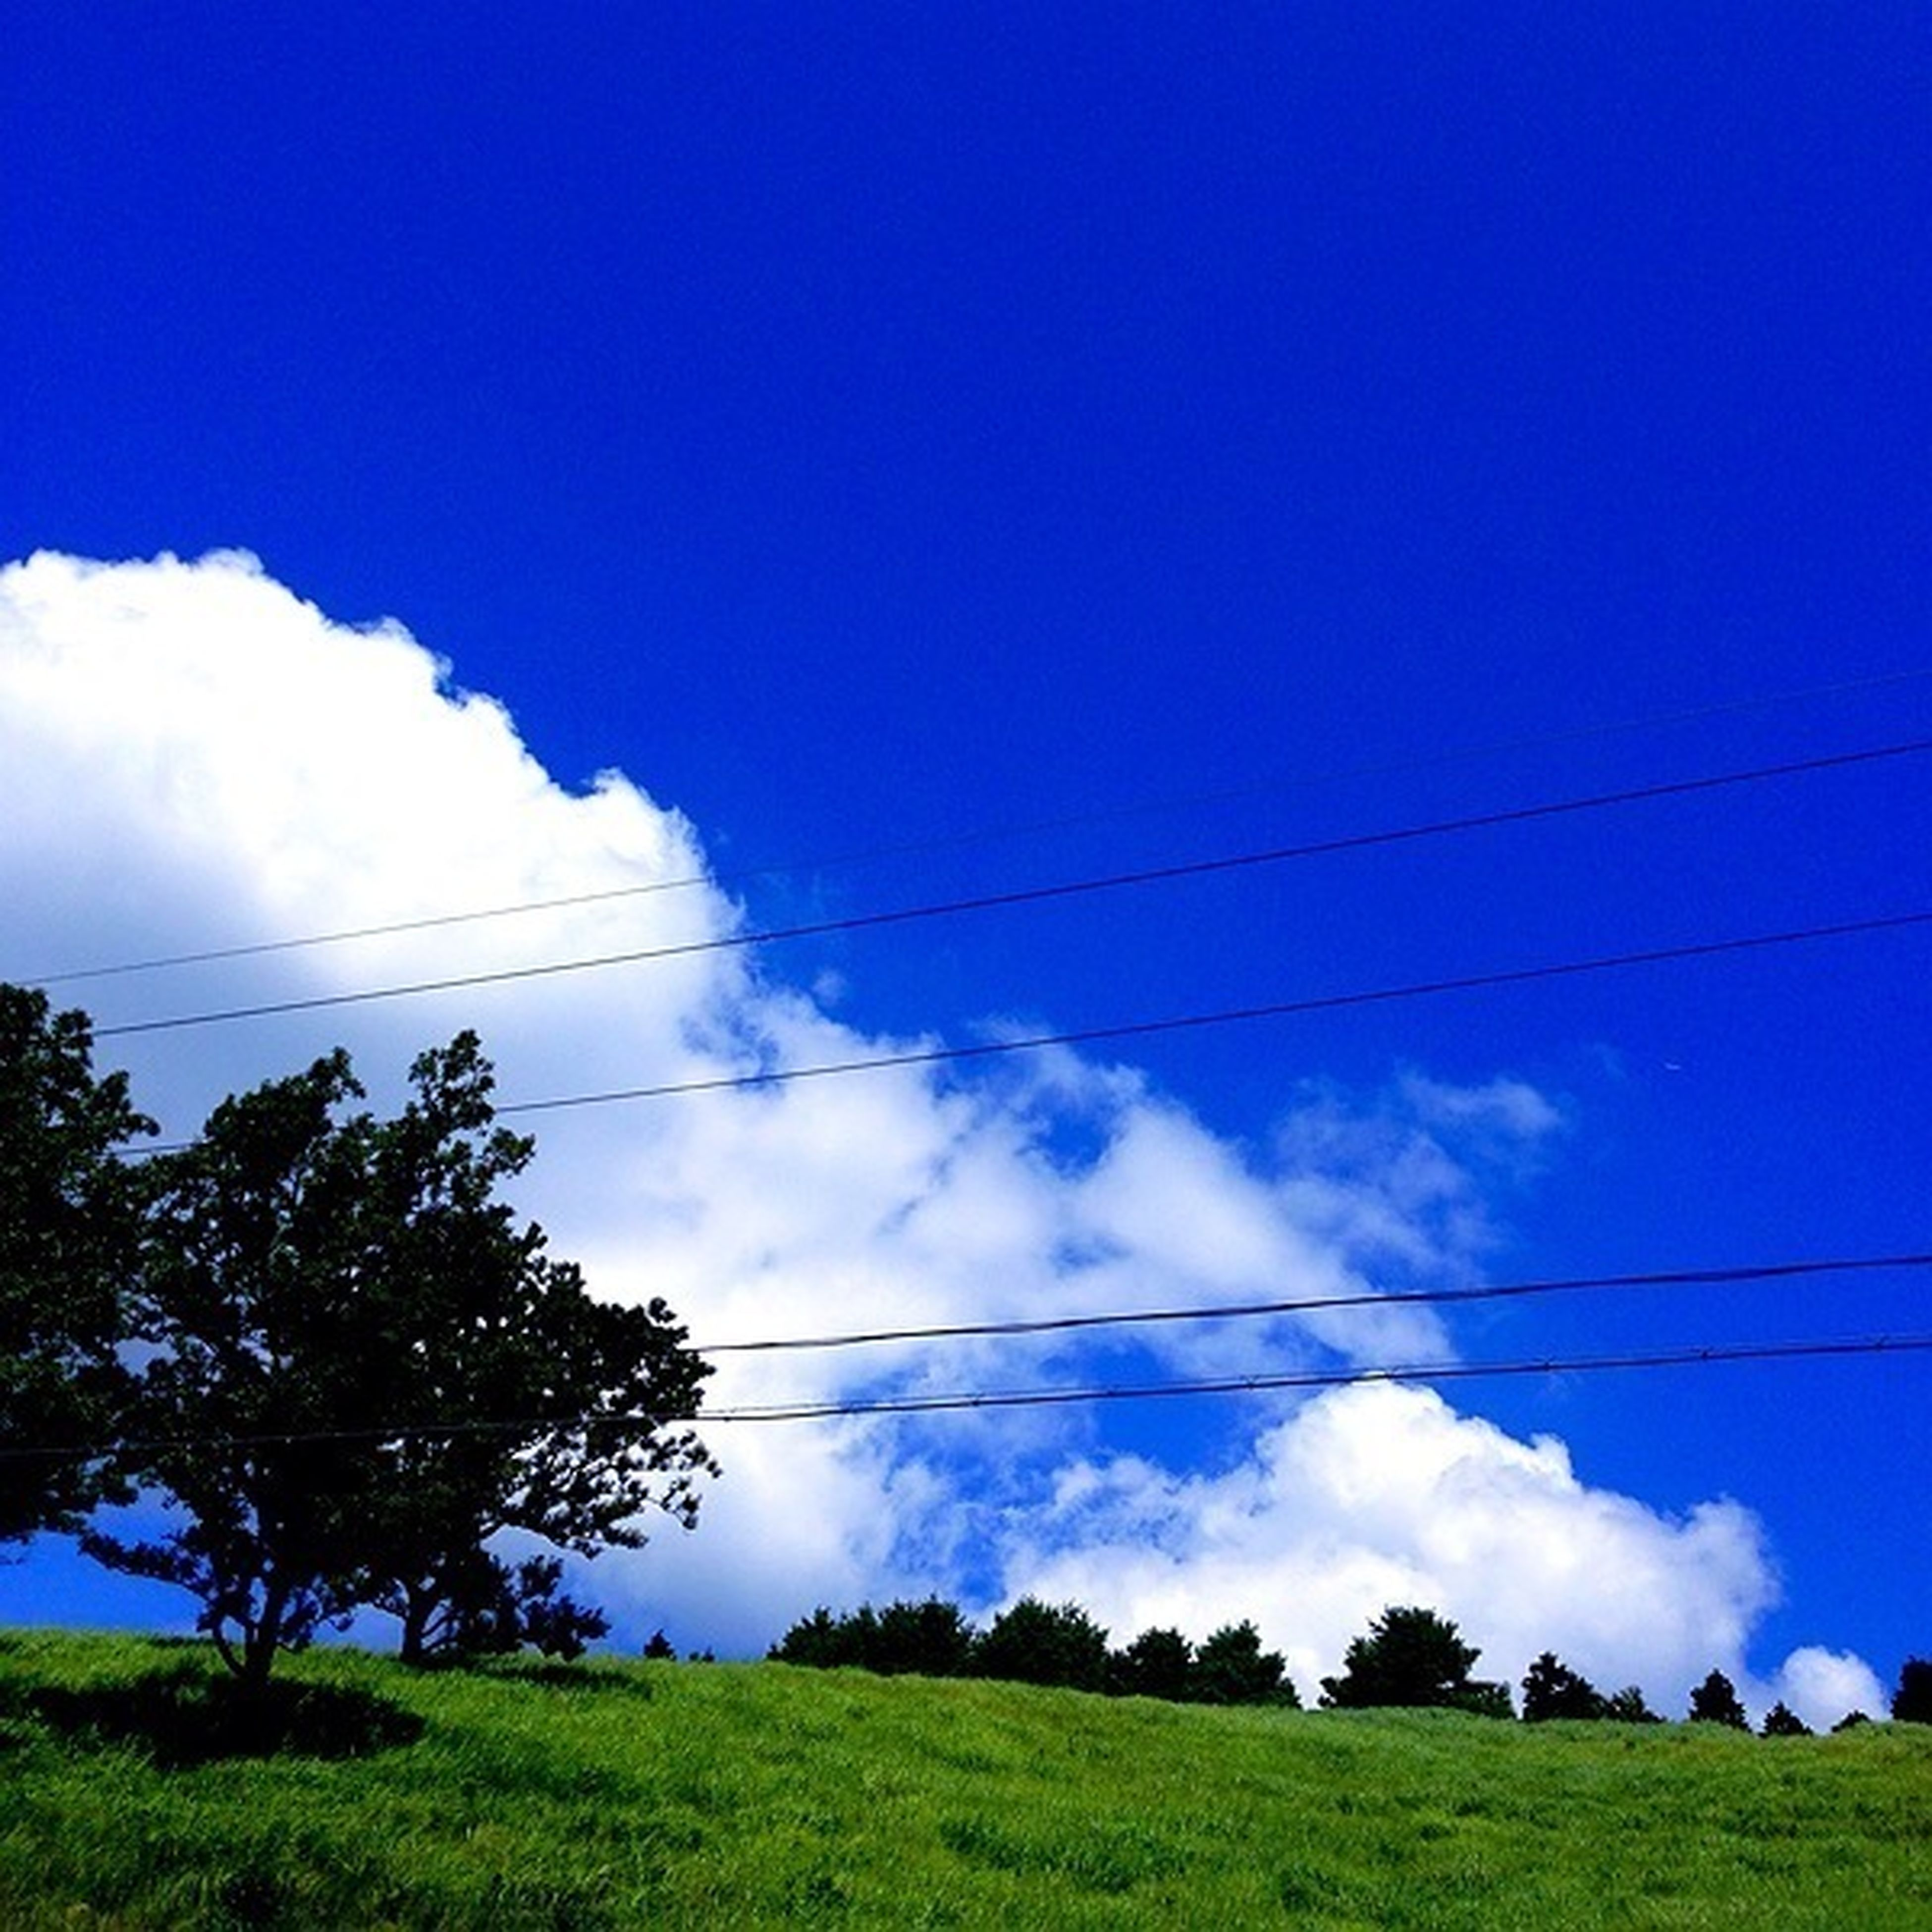 sky, blue, tranquility, landscape, tranquil scene, field, grass, tree, power line, nature, scenics, electricity pylon, beauty in nature, cloud - sky, cloud, electricity, green color, grassy, low angle view, non-urban scene